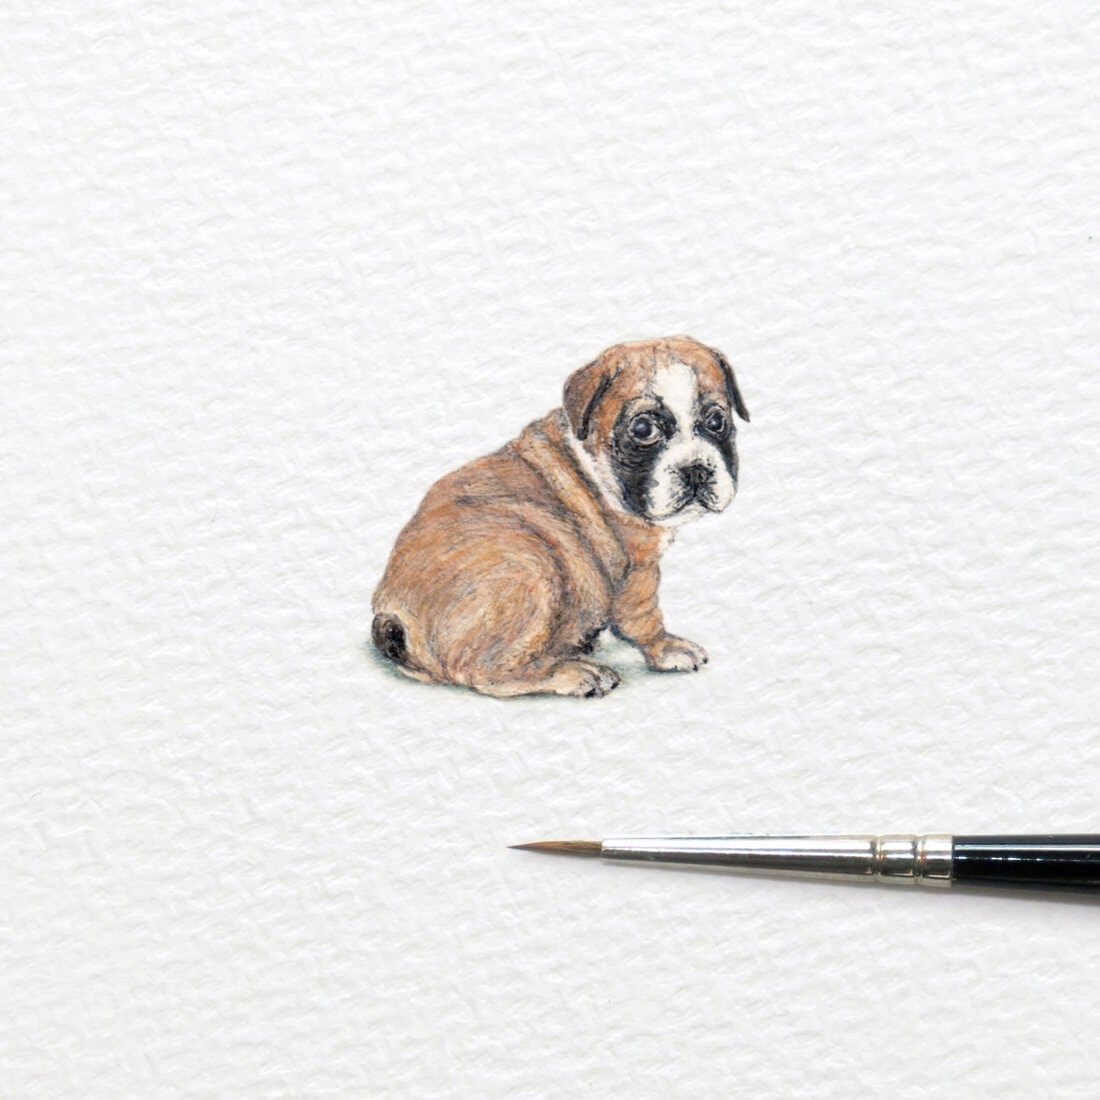 14-Bulldog-Puppy-Frank Holzenburg Miniature Drawings and Paintings of Animals-www-designstack-co